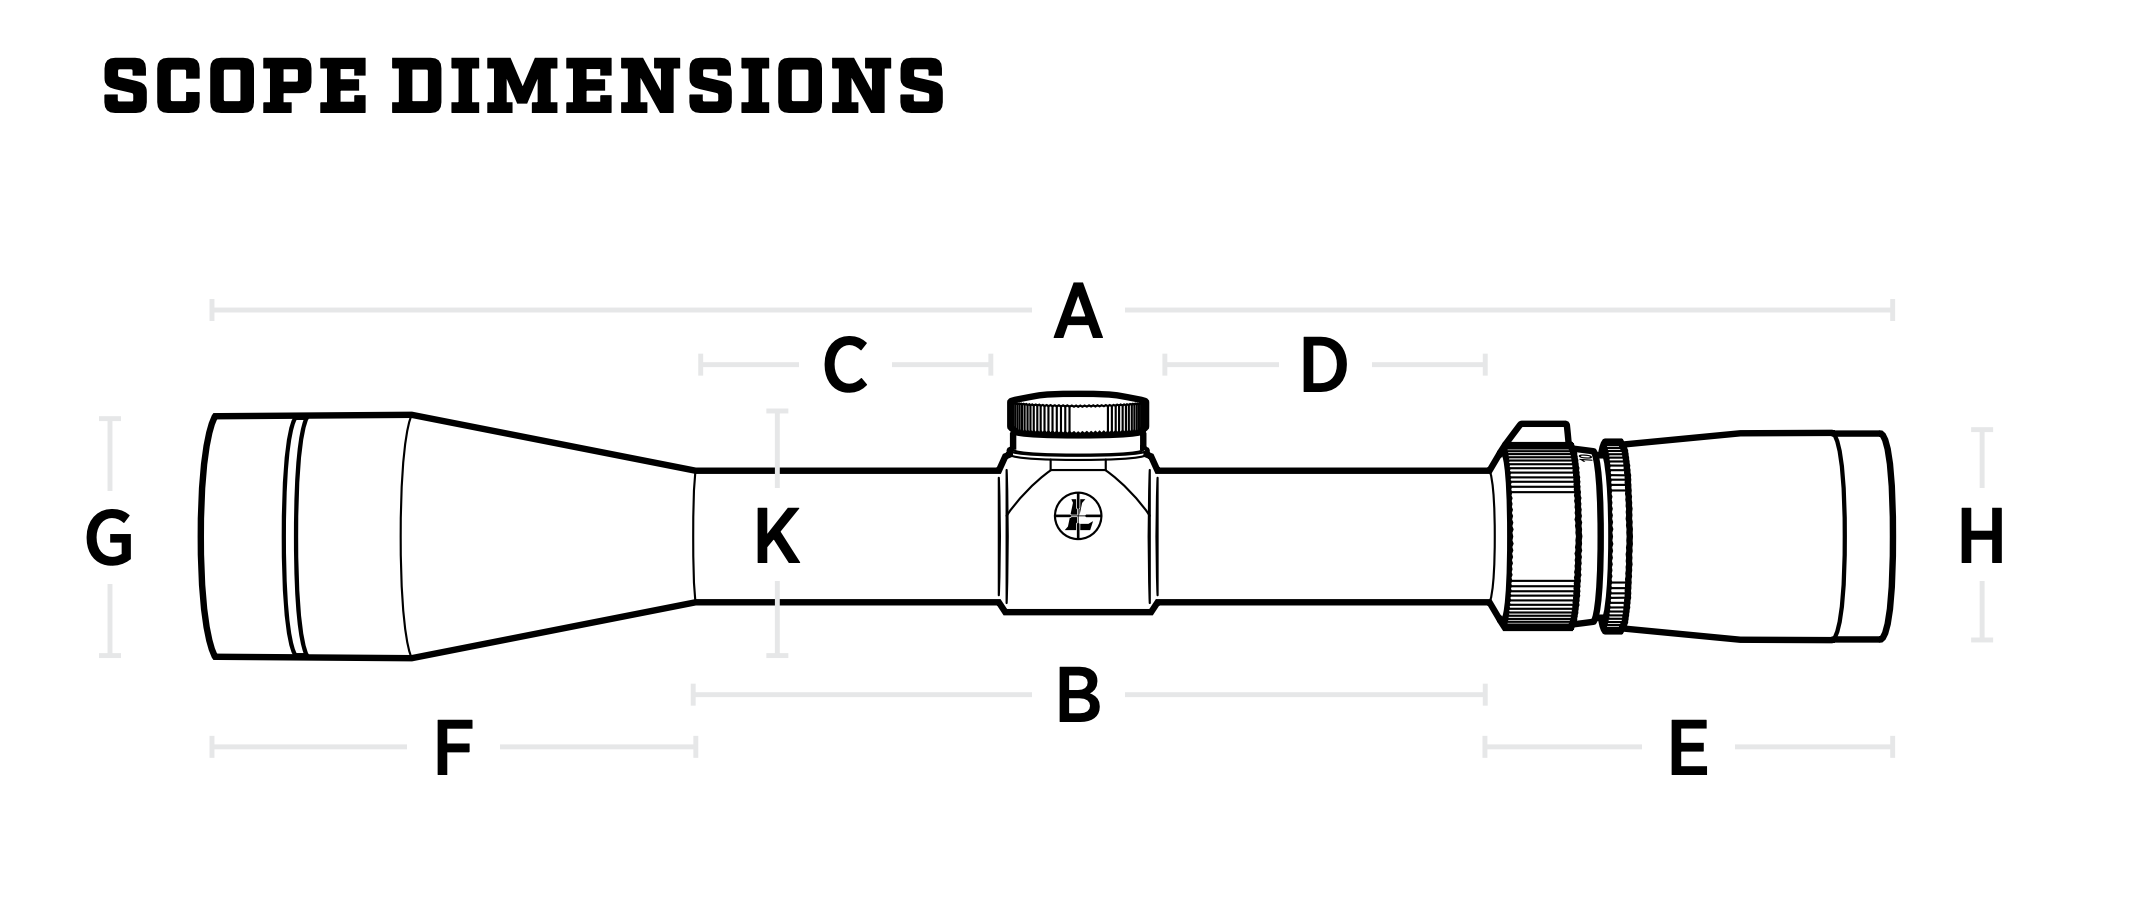 vx-freedom-scope-dimensions.png